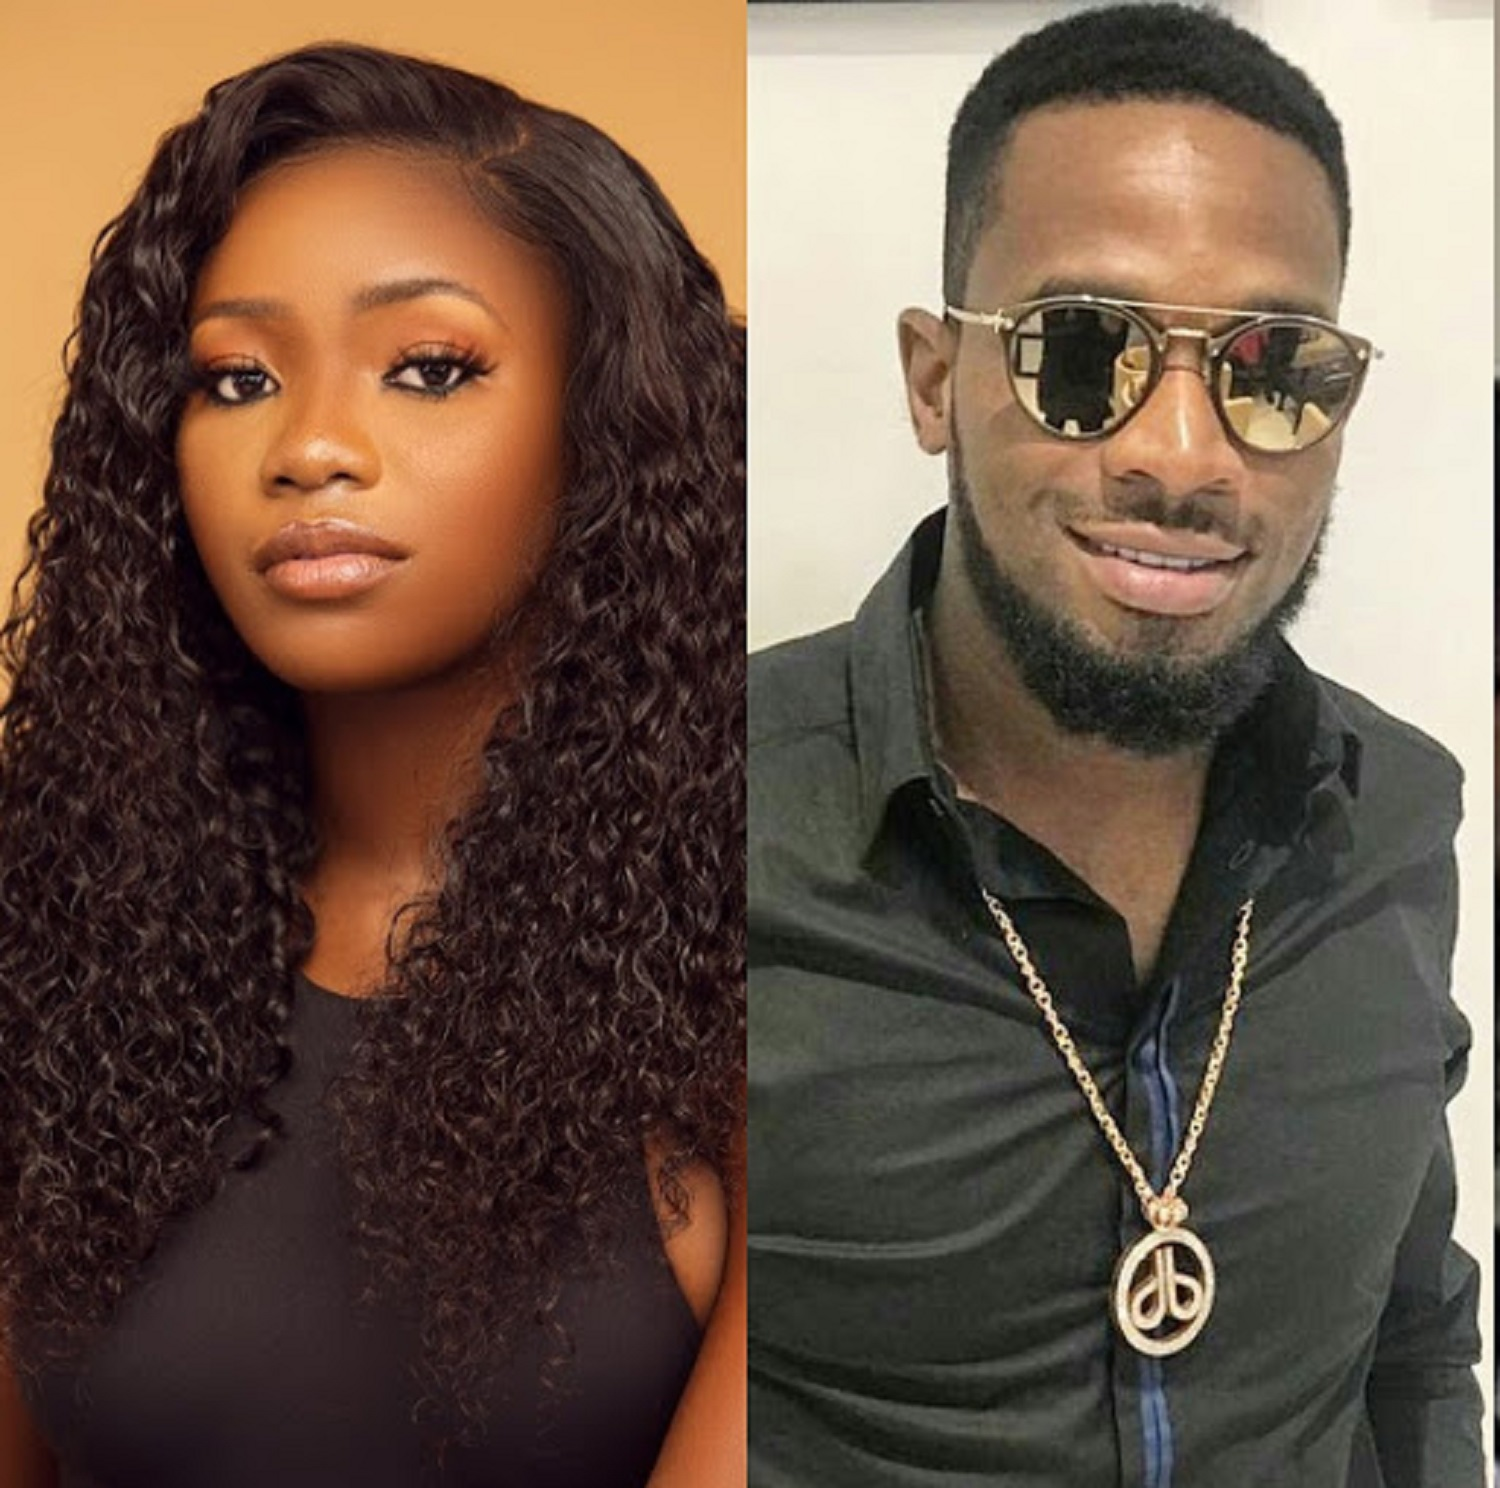 Rape allegation: Police clears D'banj, says no evidence against him thumbnail